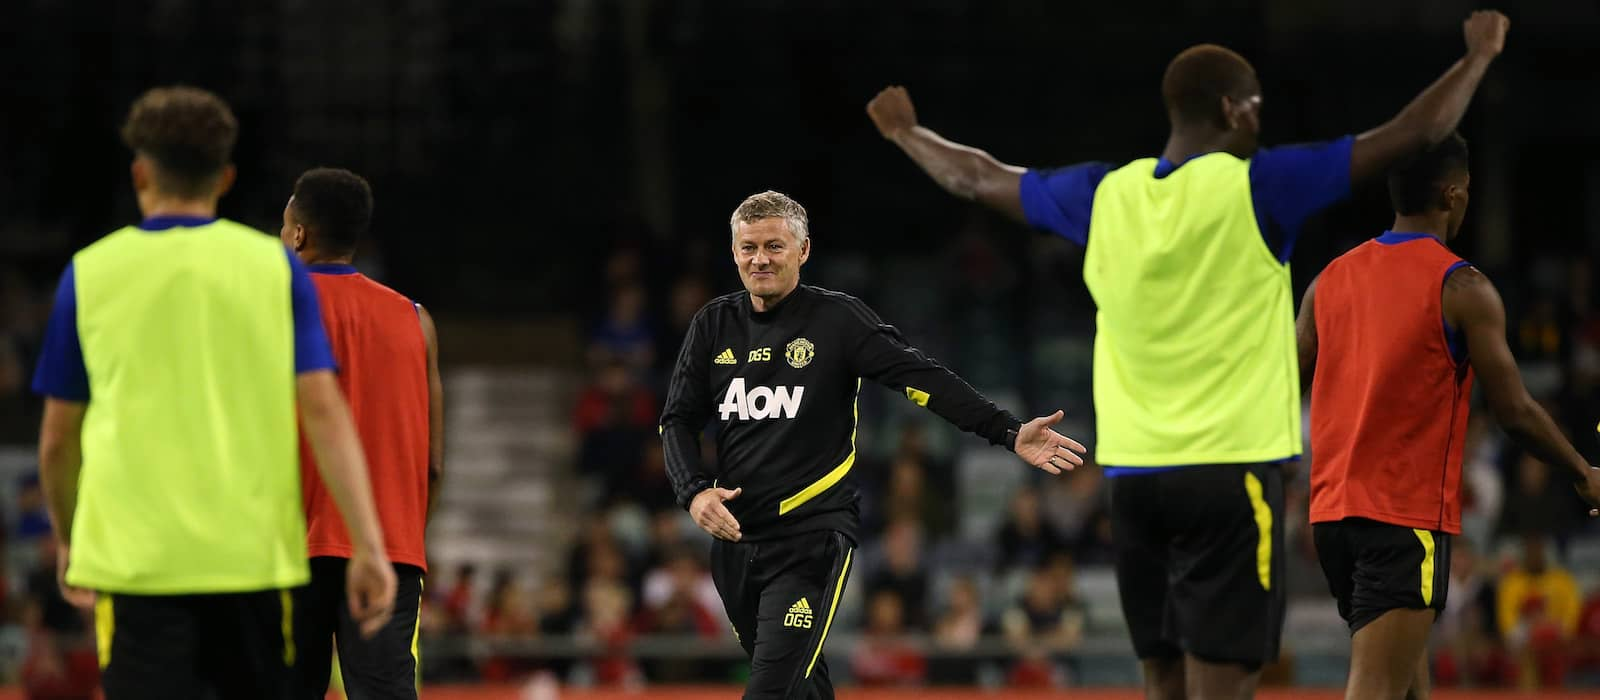 Manchester United announced key backroom staff changes under Ole Gunnar Solskjaer